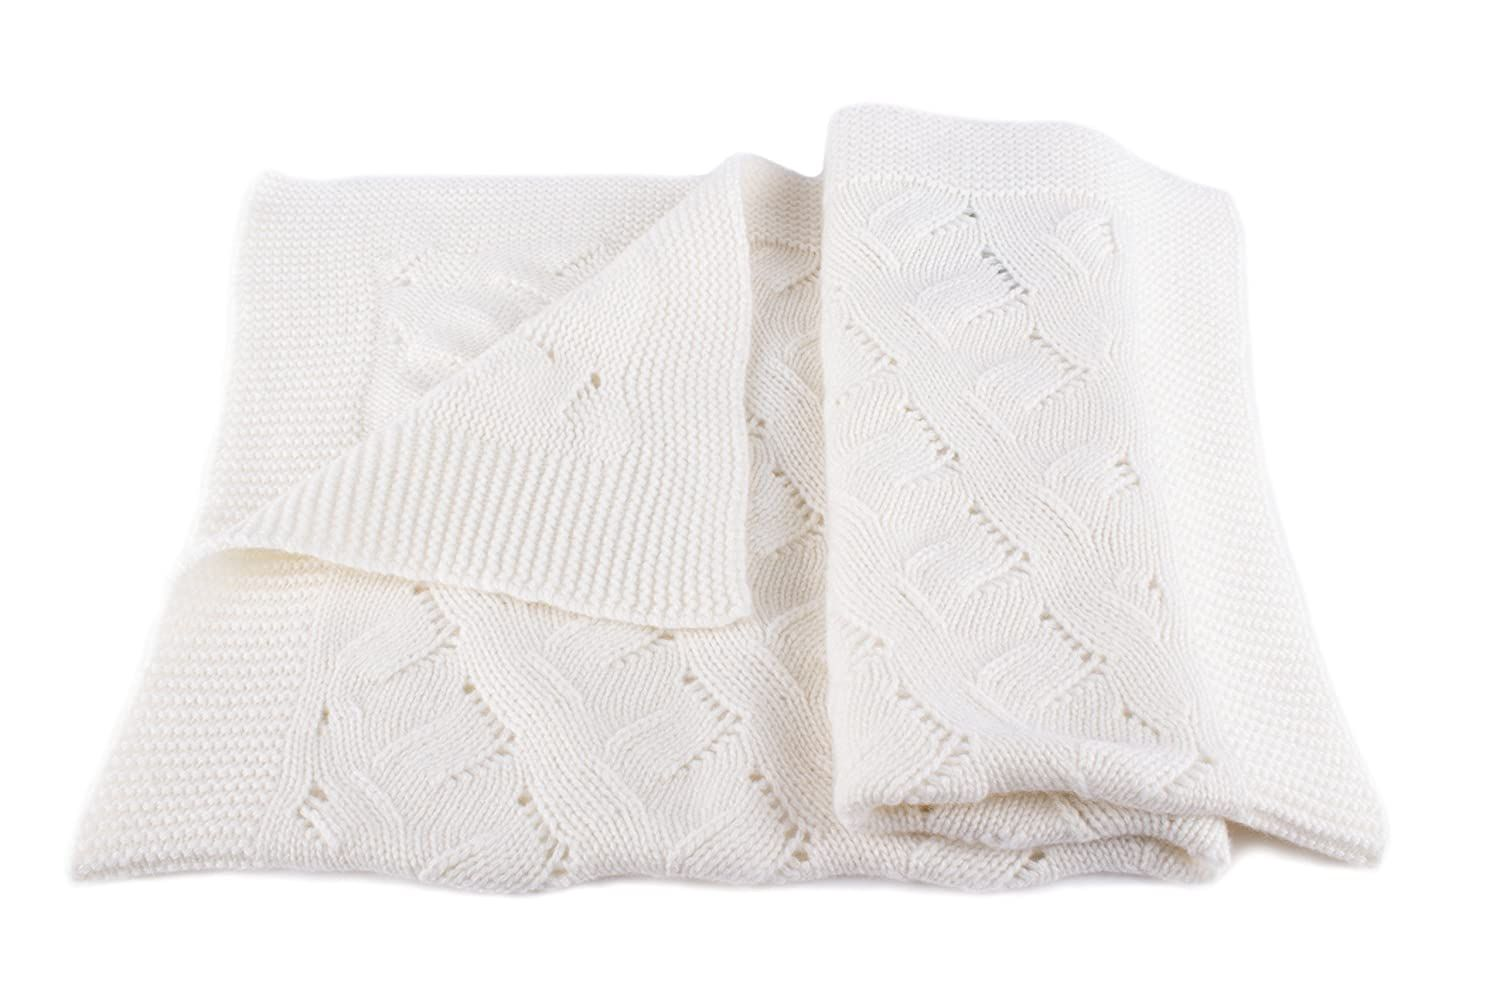 Unisex Luxury 100 Cashmere Baby Blanket White Hand Made In Scotland By Love Cashmere Rr En 2020 Couverture Bebe